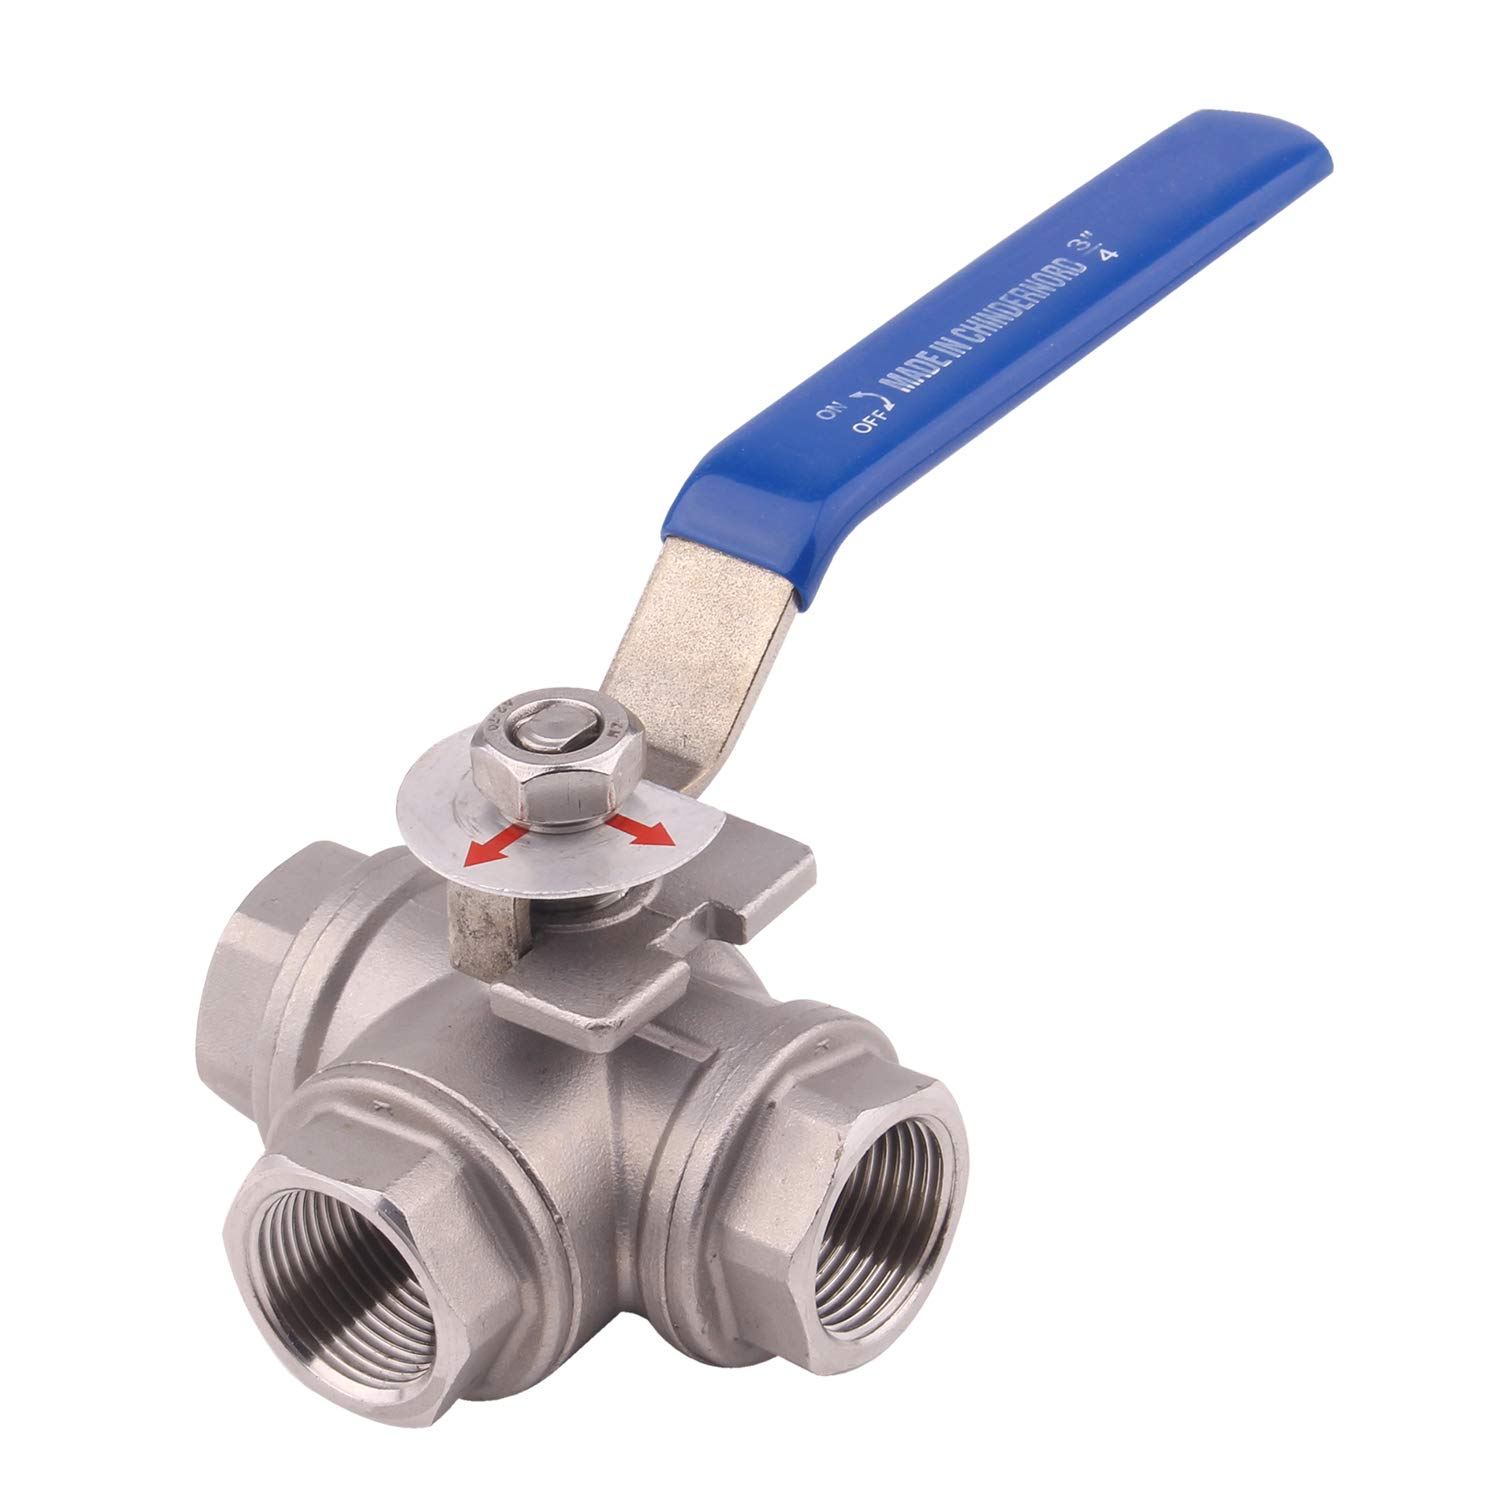 Dernord 3-Way Ball Valve L Mounting Pad Stainless Steel 304 Female Type with Vinyl Locking Handle 3//4 Inch NPT